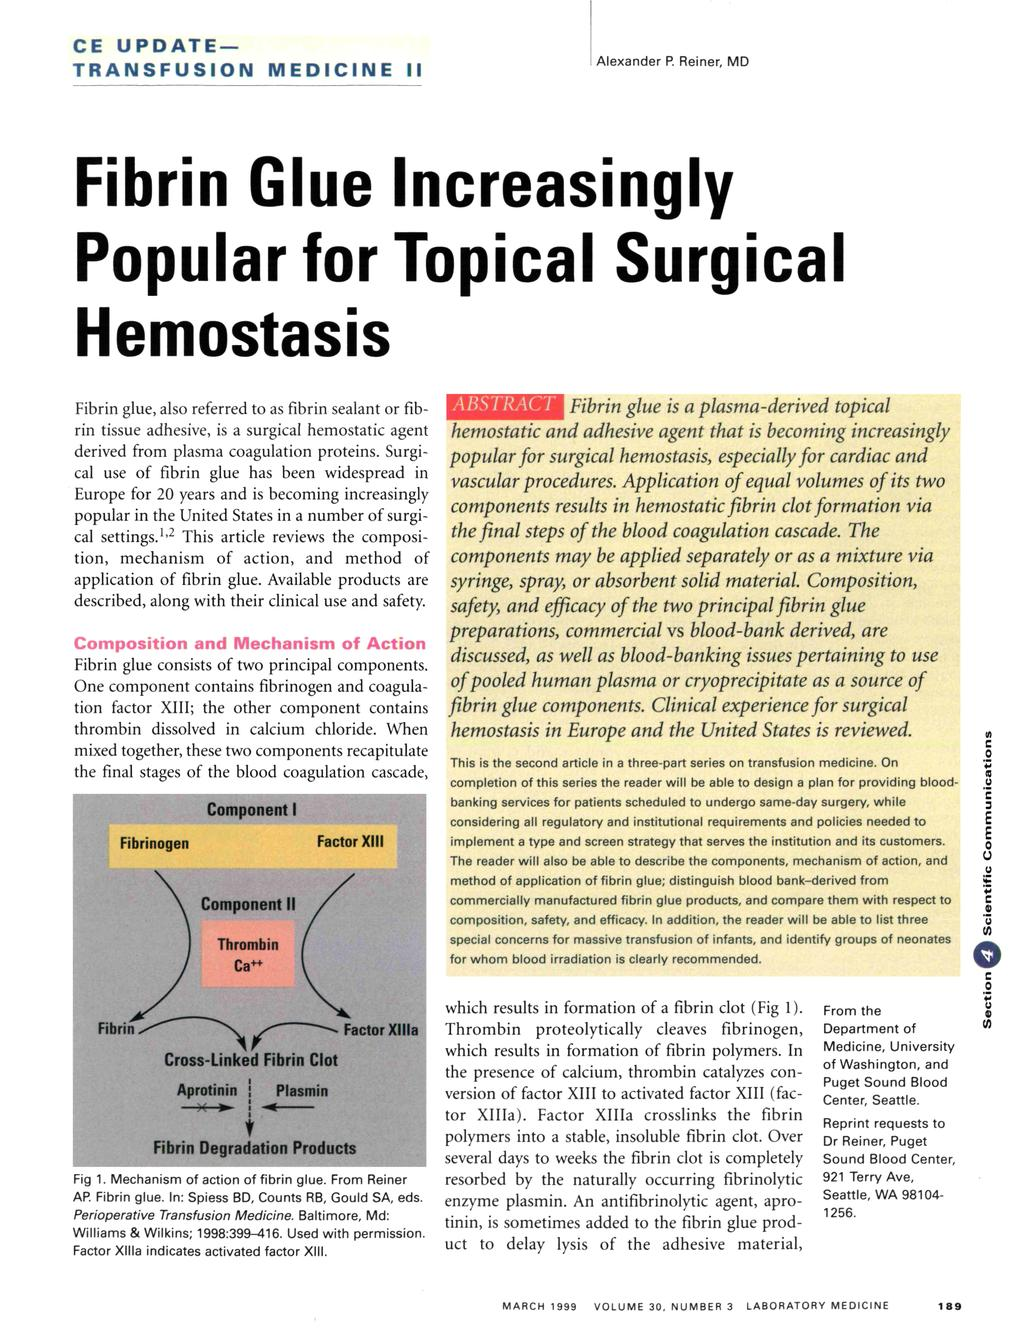 Fibrin Glue Increasingly Popular for Topical Surgical